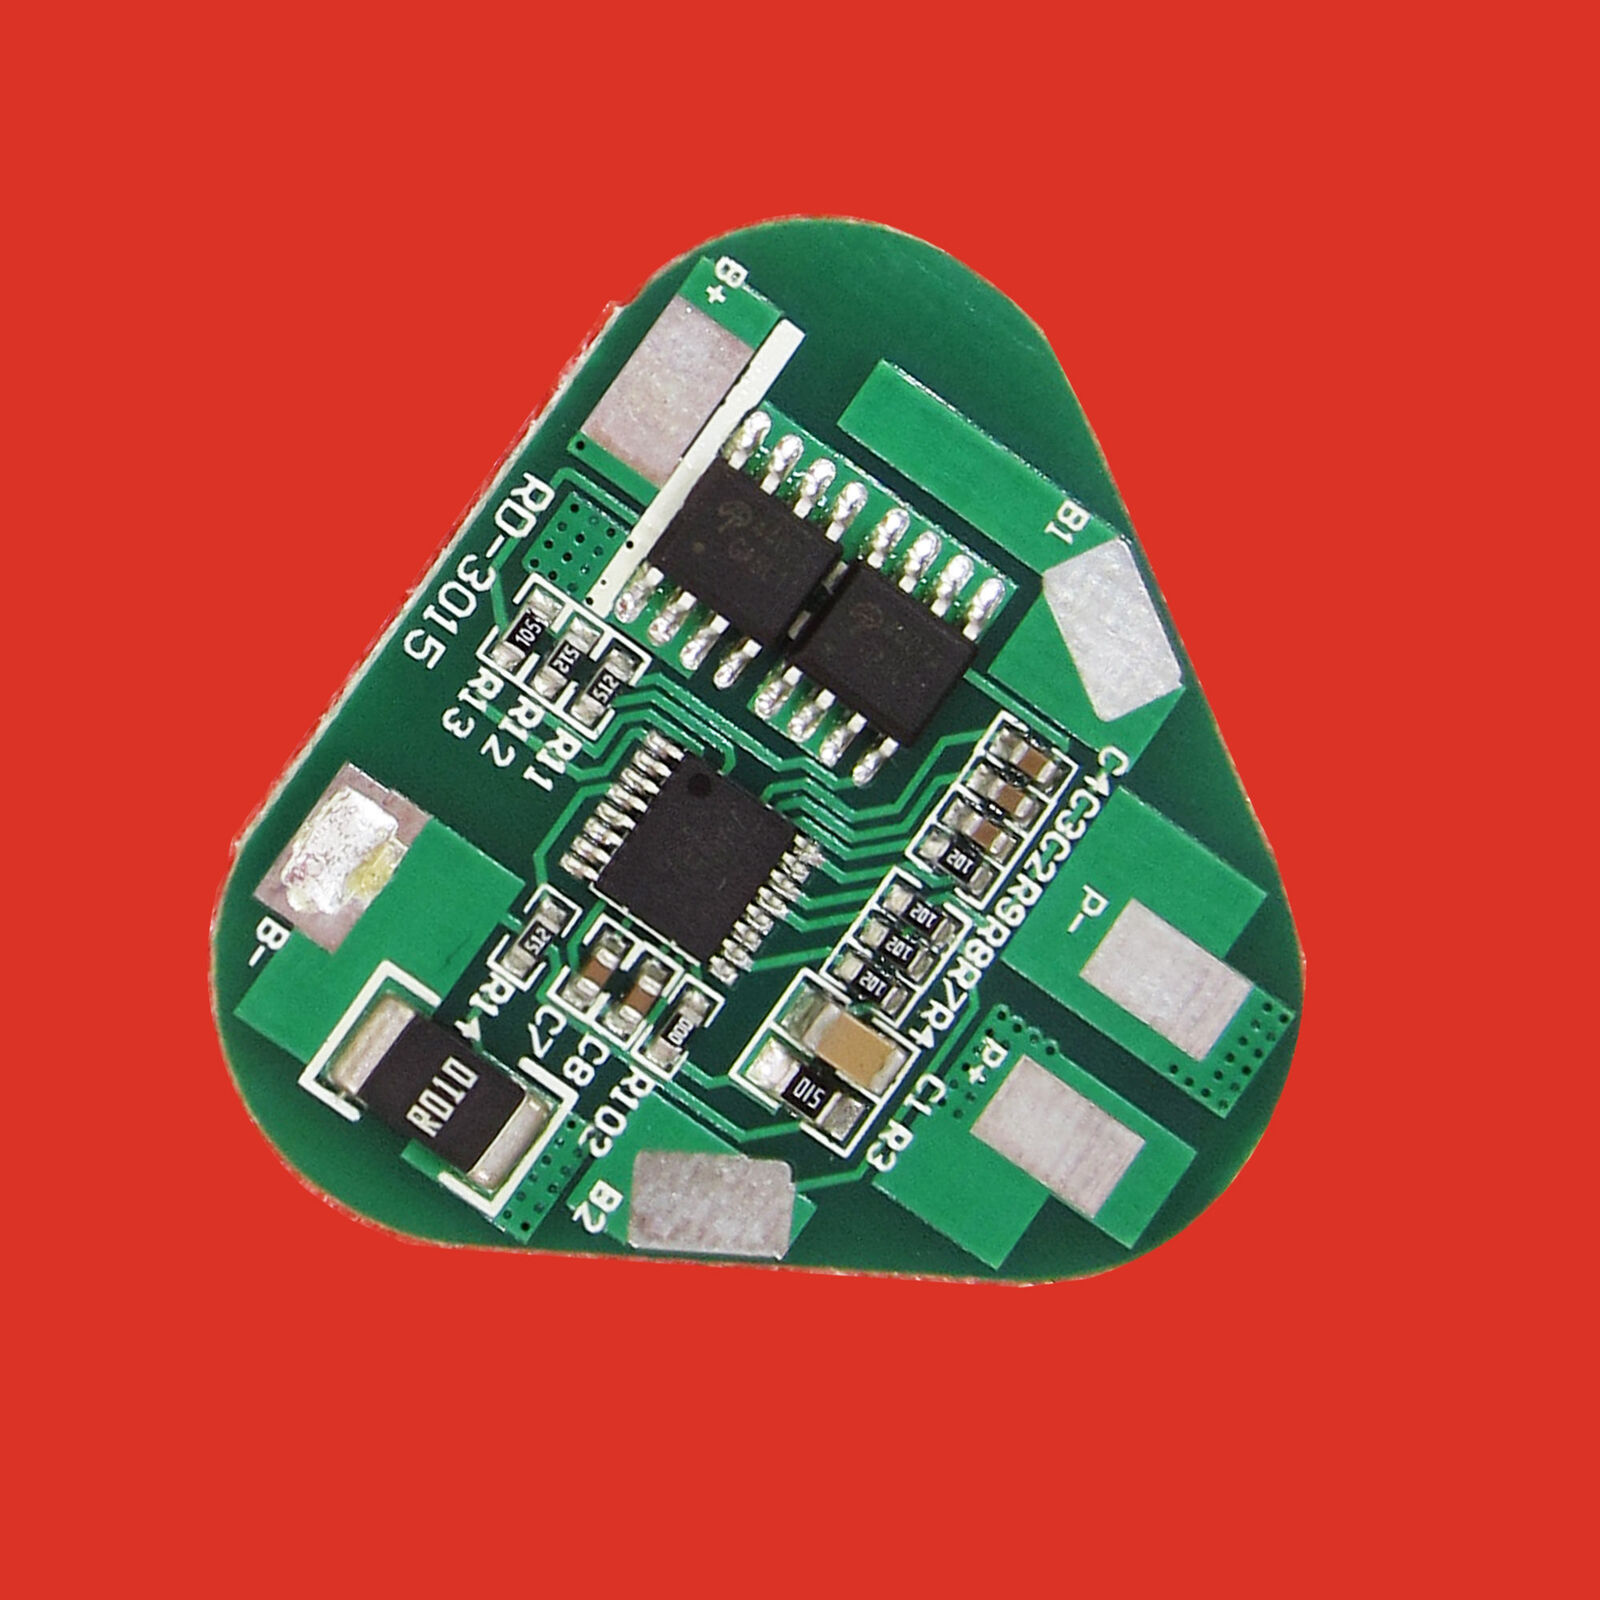 3s Li Ion Lithium Battery Protection Circuit Board 3 Cell Pcb 108v Cellphone Charger Of Lm317 Norton Secured Powered By Verisign